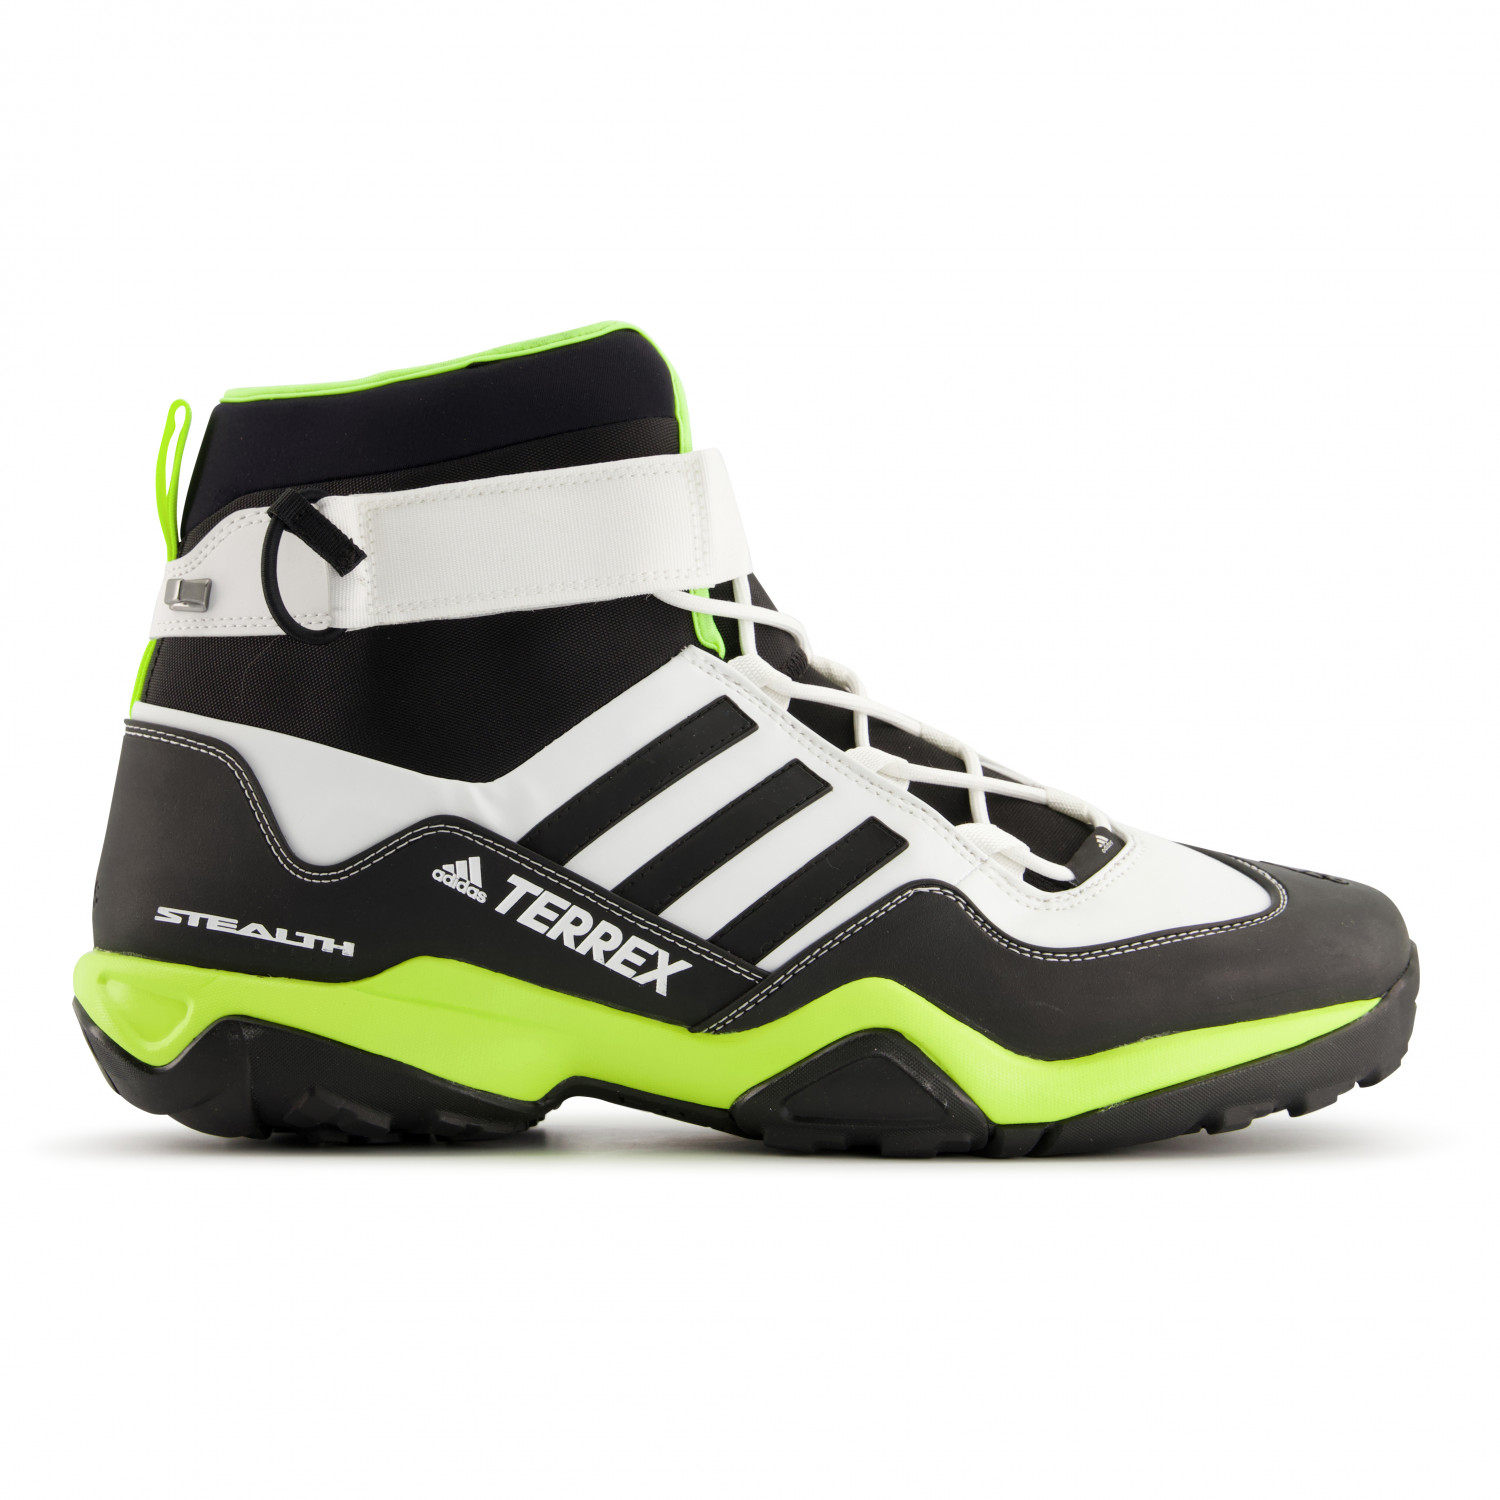 Adidas Terrex Hydro Water Shoes